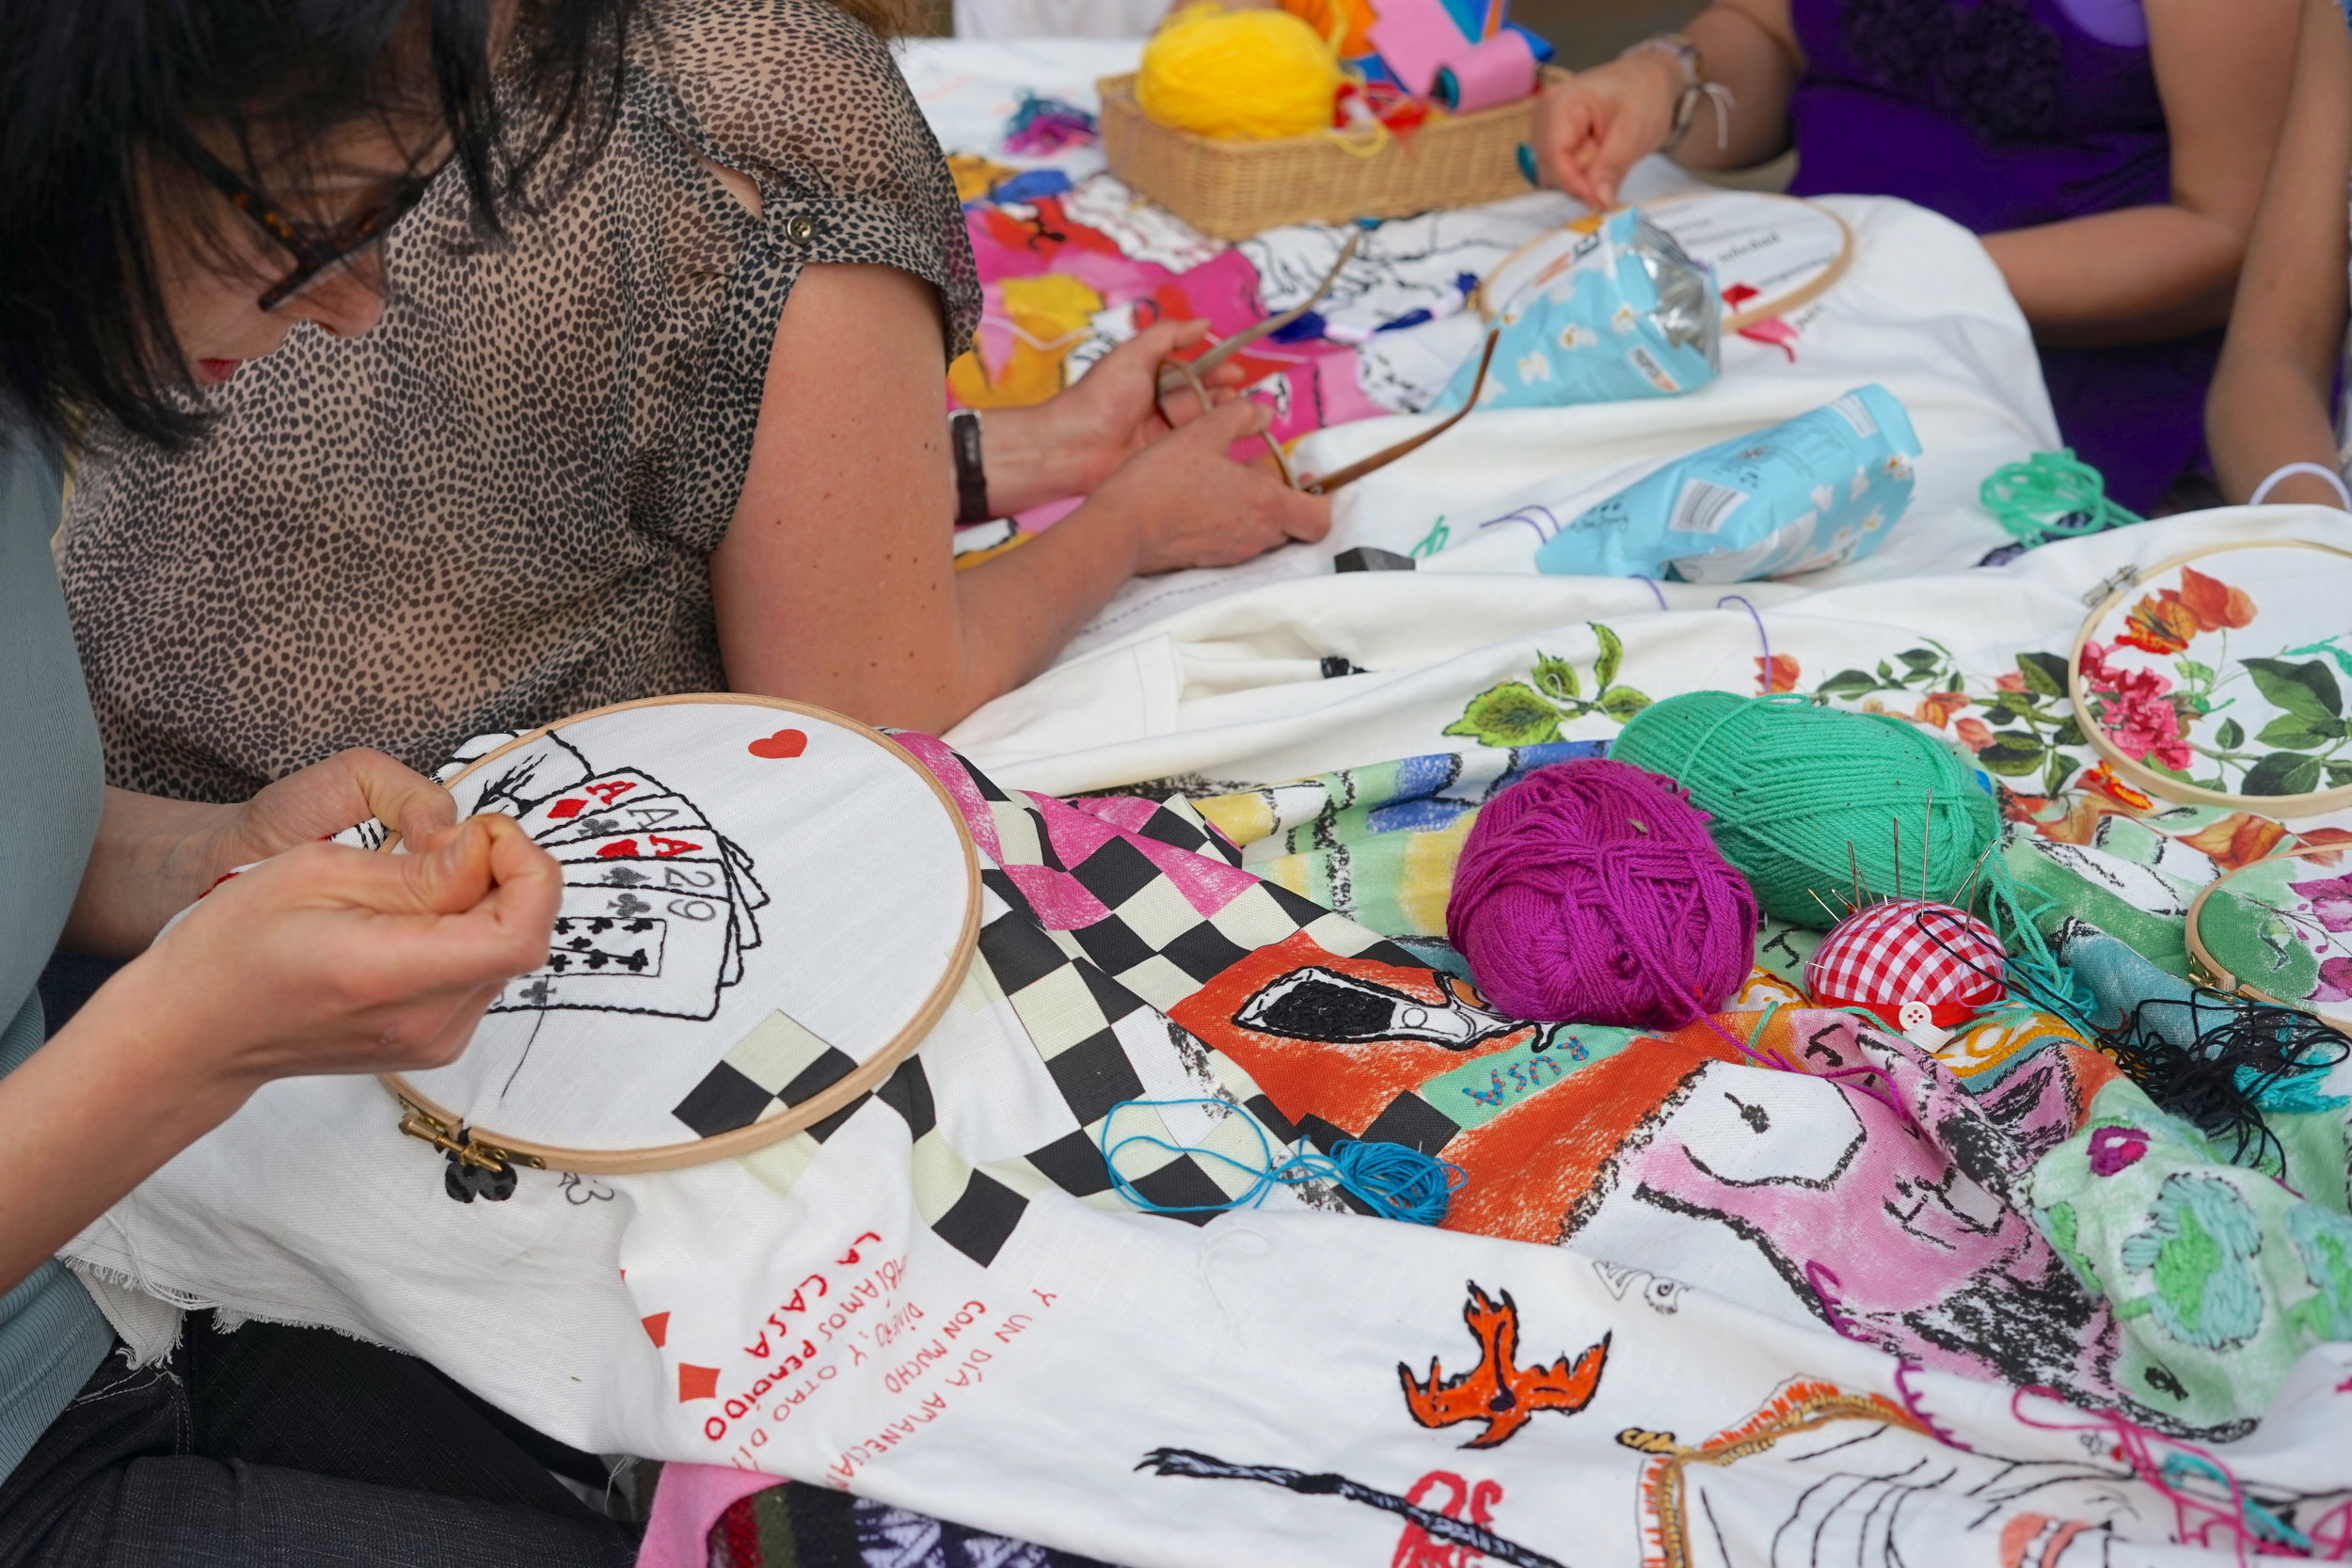 EMBROIDERING STORIES FROM YOUR COMMUNITY